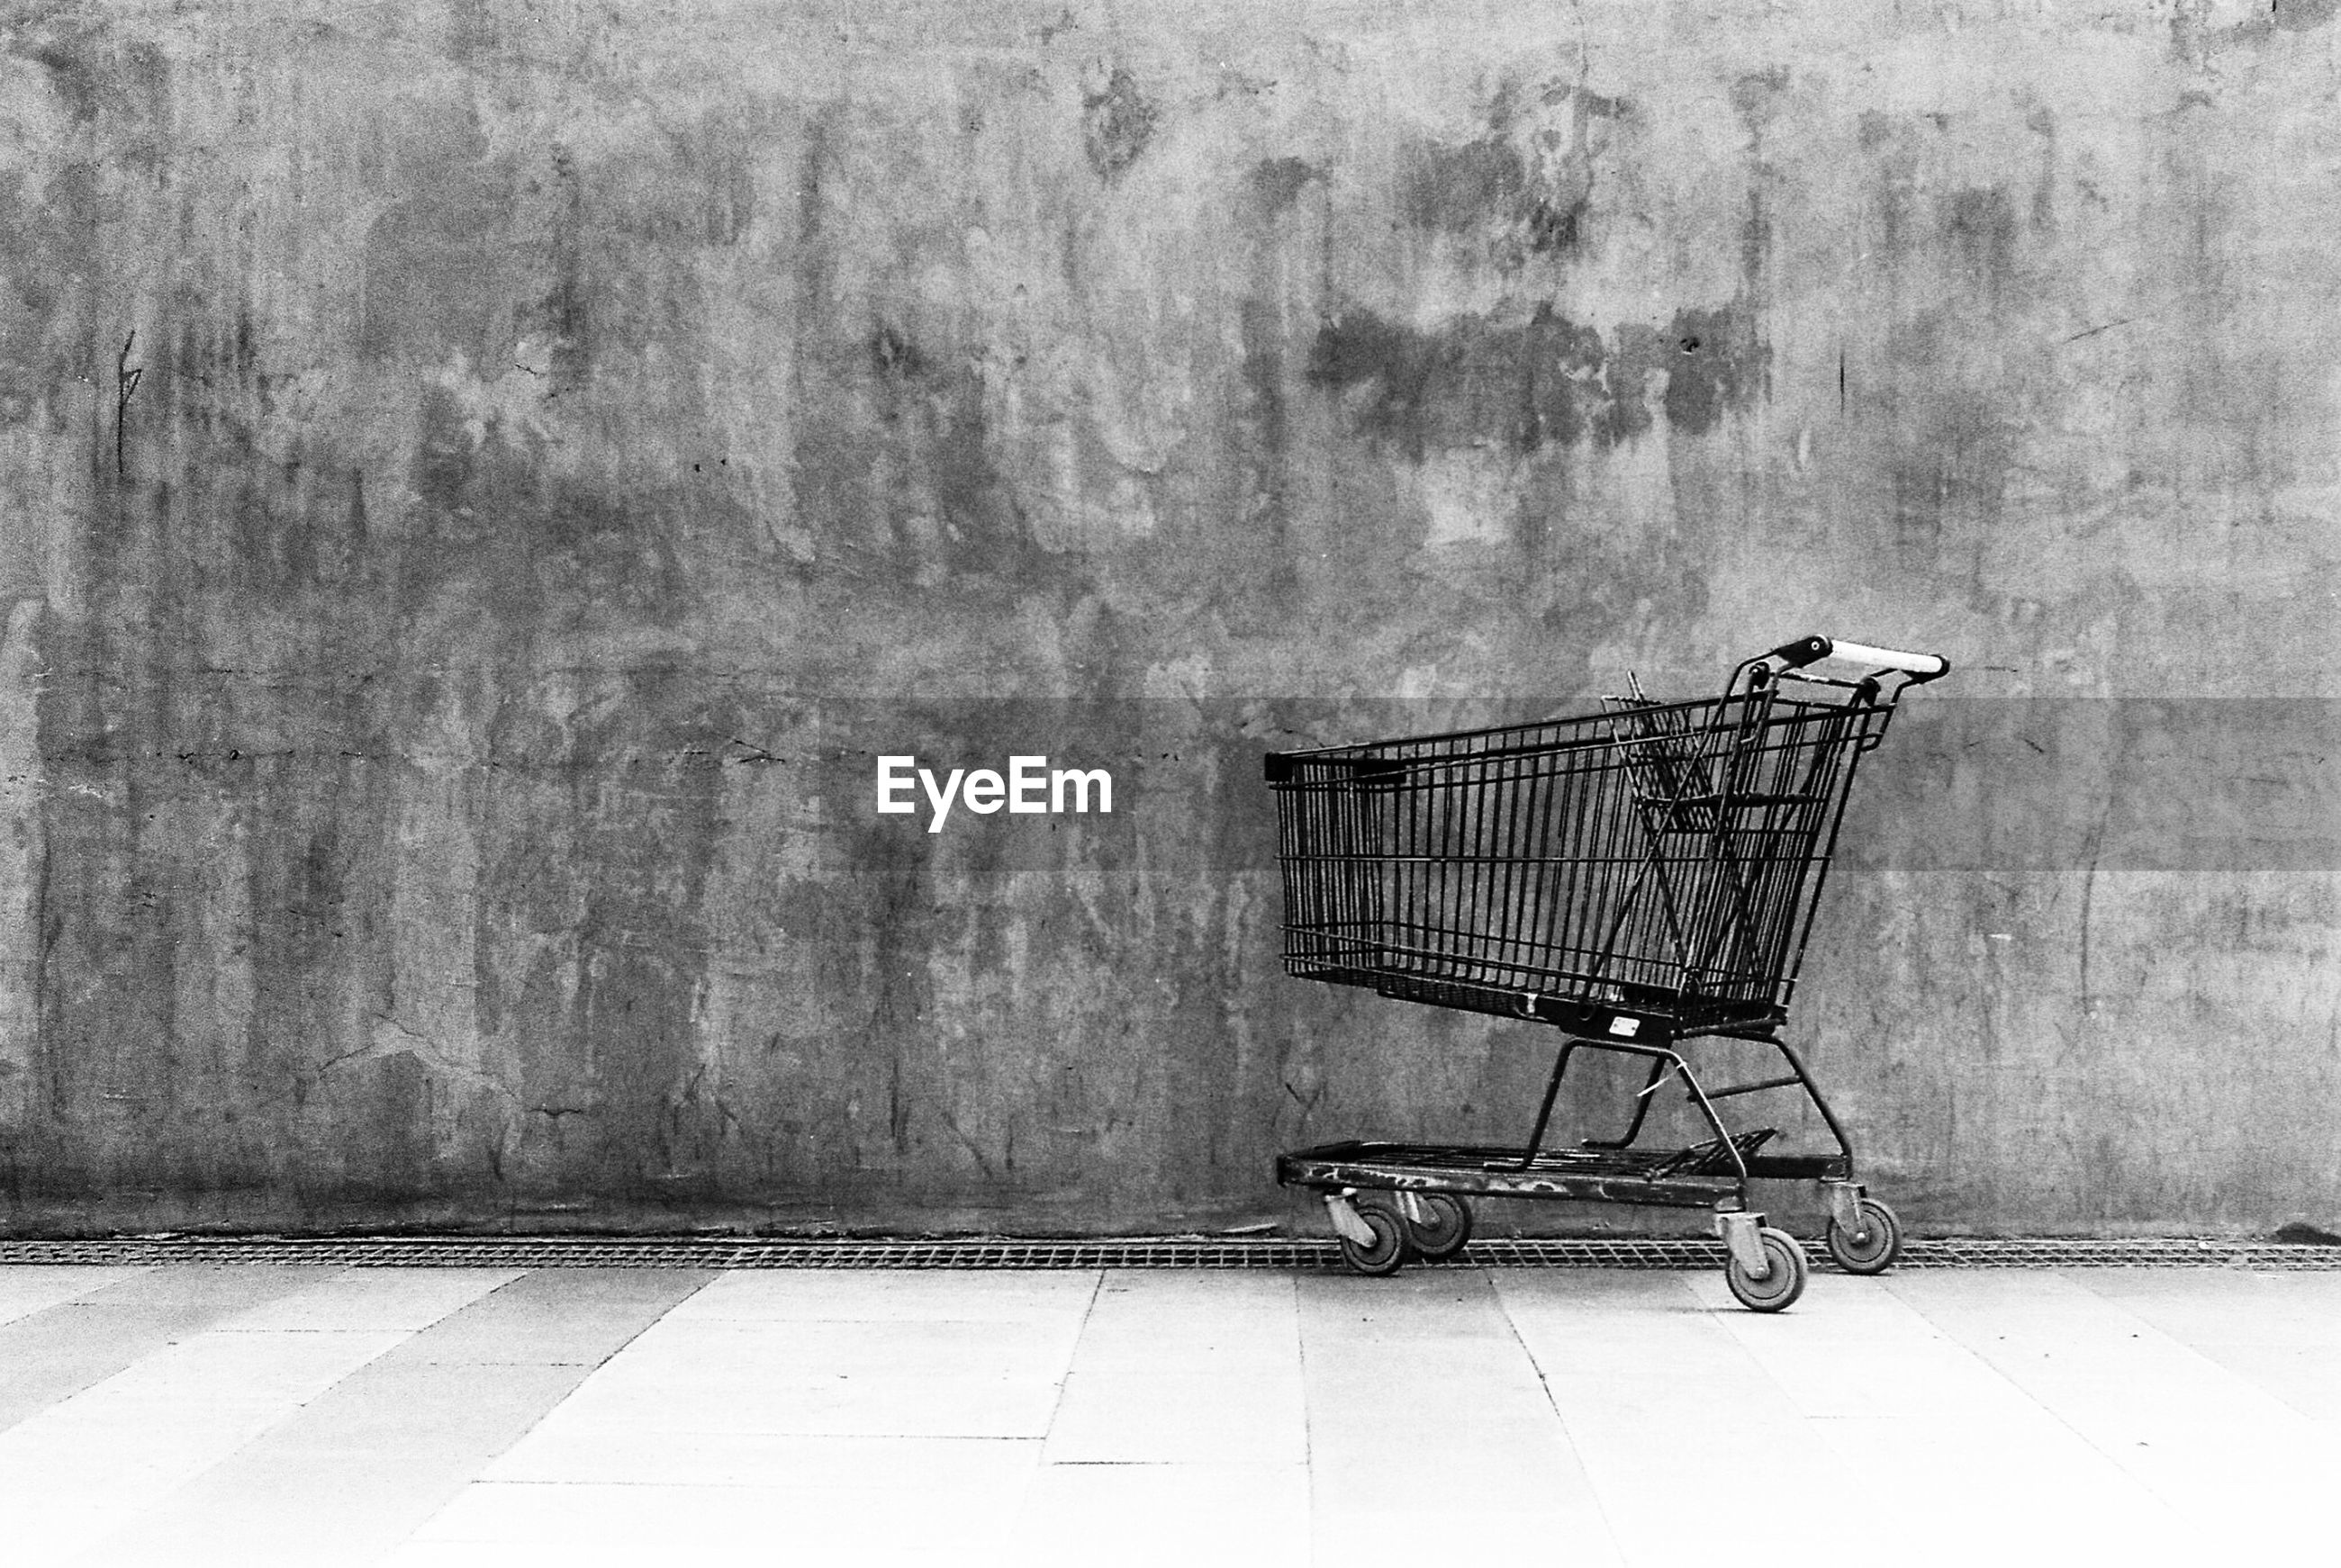 Abandoned shopping cart against wall